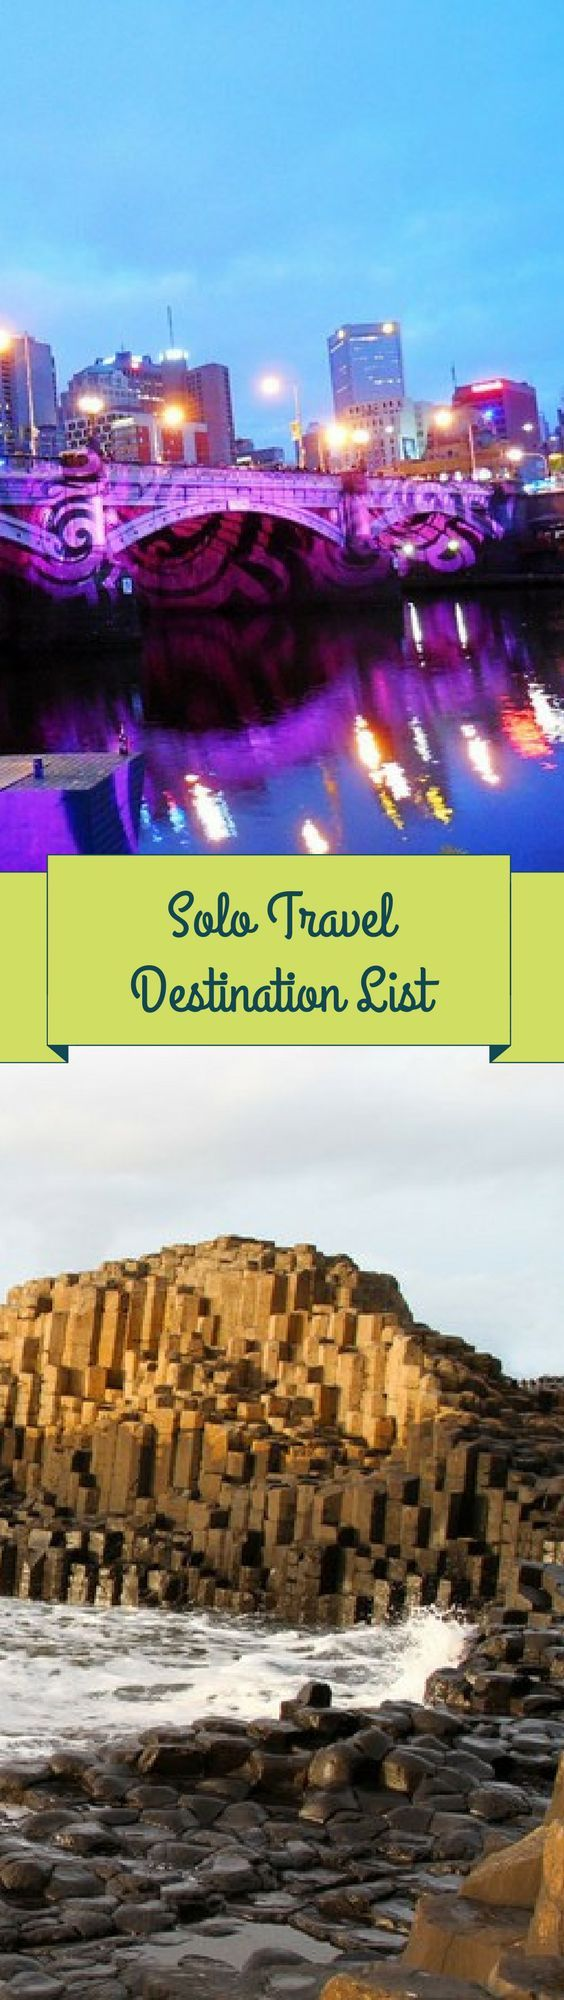 Looking for safest places to travel solo? 30 travel bloggers share their top solo travel destinations. Click to check out the ultimate list!